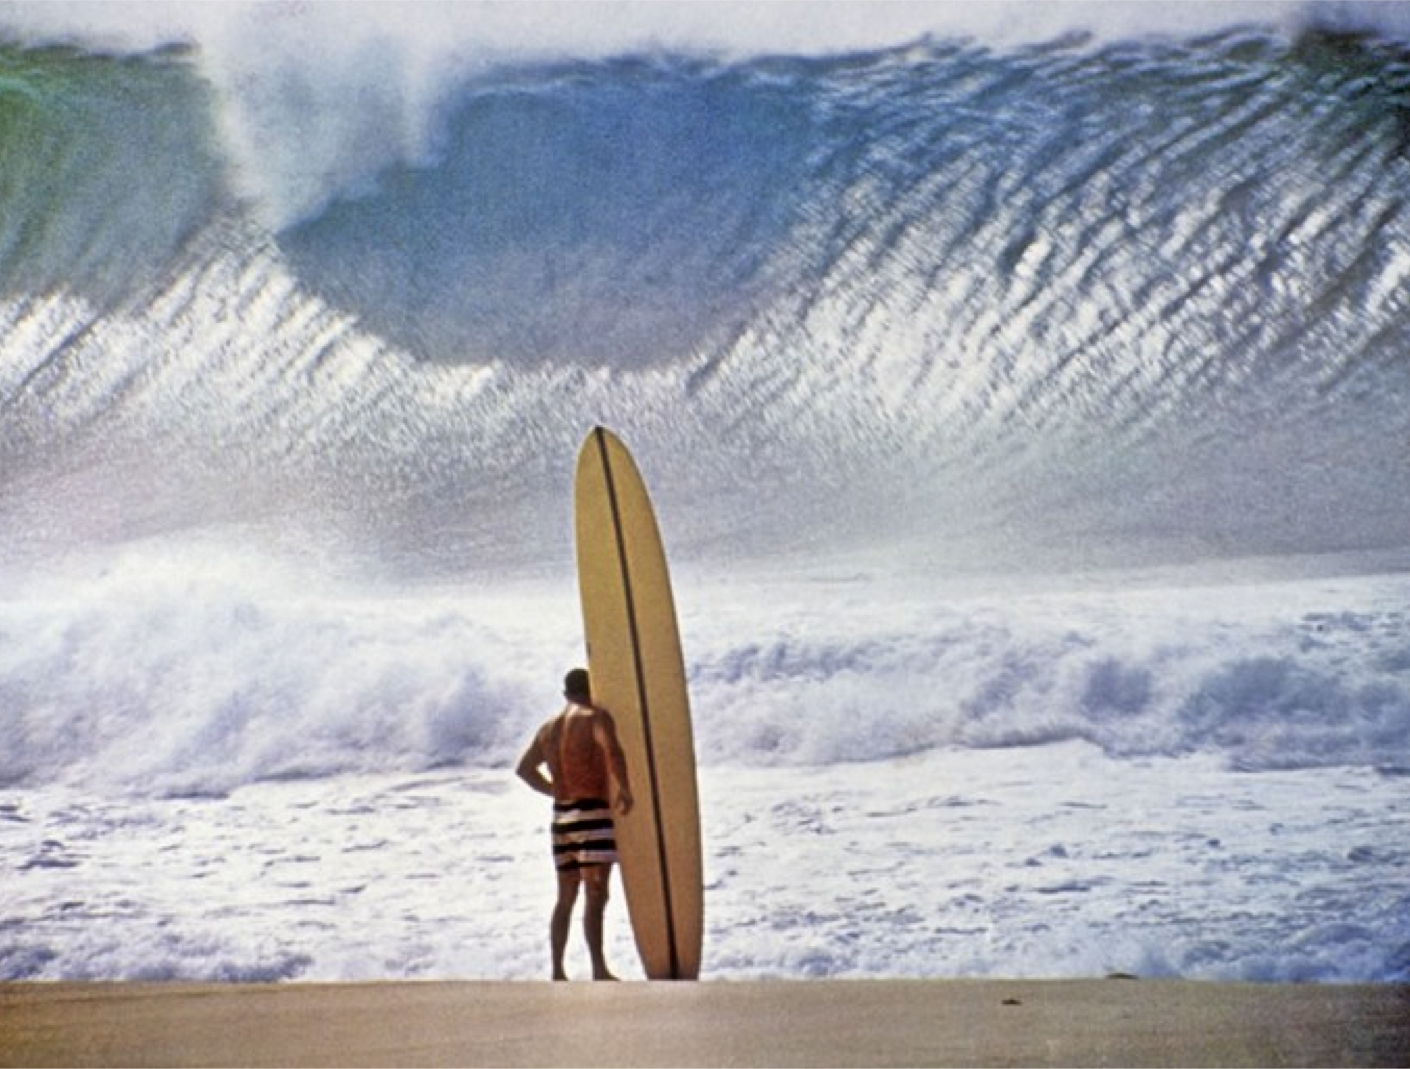 Photo Credit: John Severson 1964 The most iconic surfing pic ever. Greg Noll, Waimea Bay.